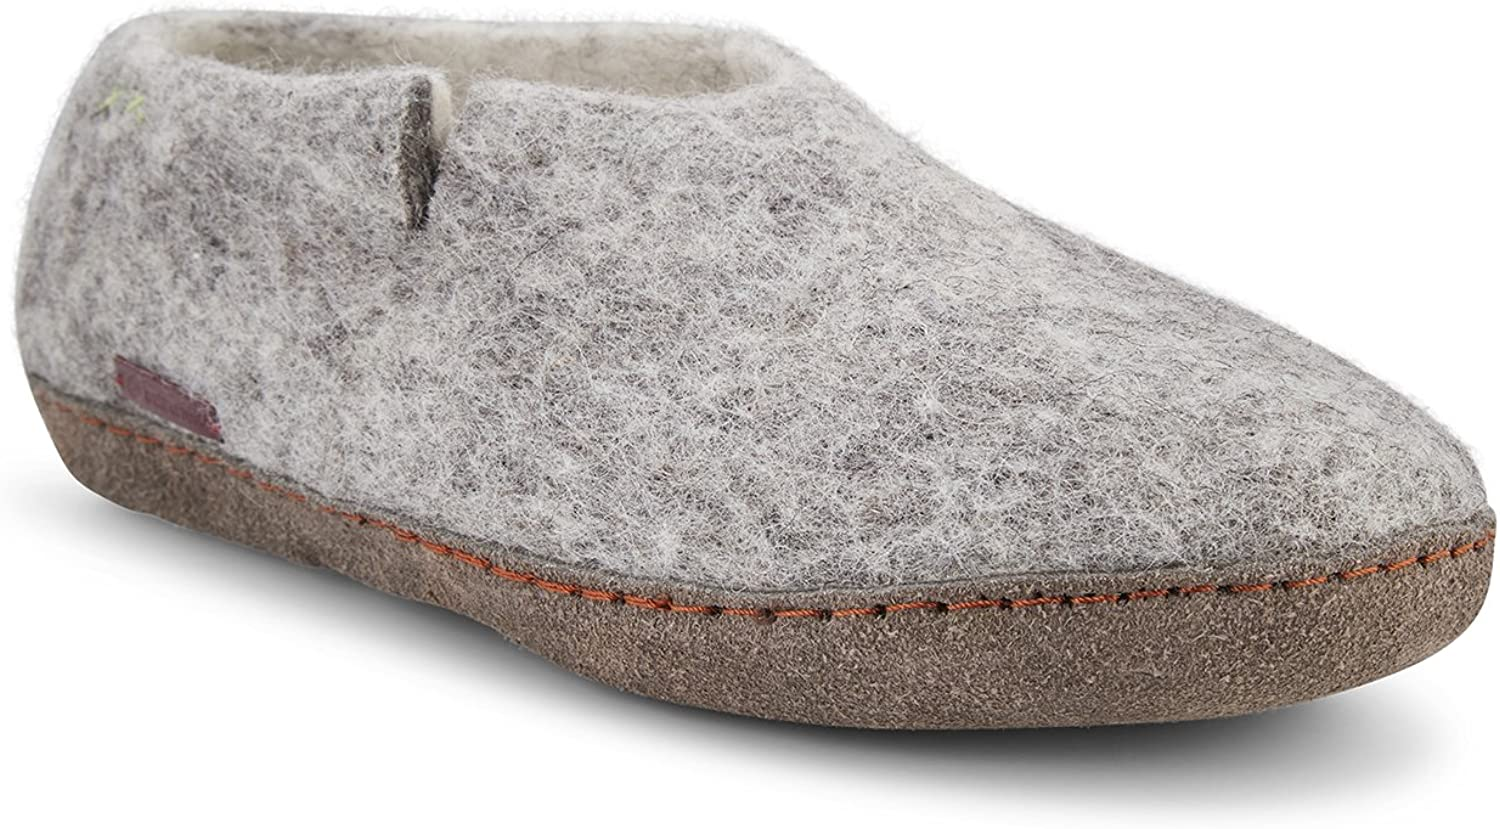 Betterfelt Hand Felted Wool Slippers for Men - Hide Sole - Size 8 - Grey - Fairtrade Classic shoes